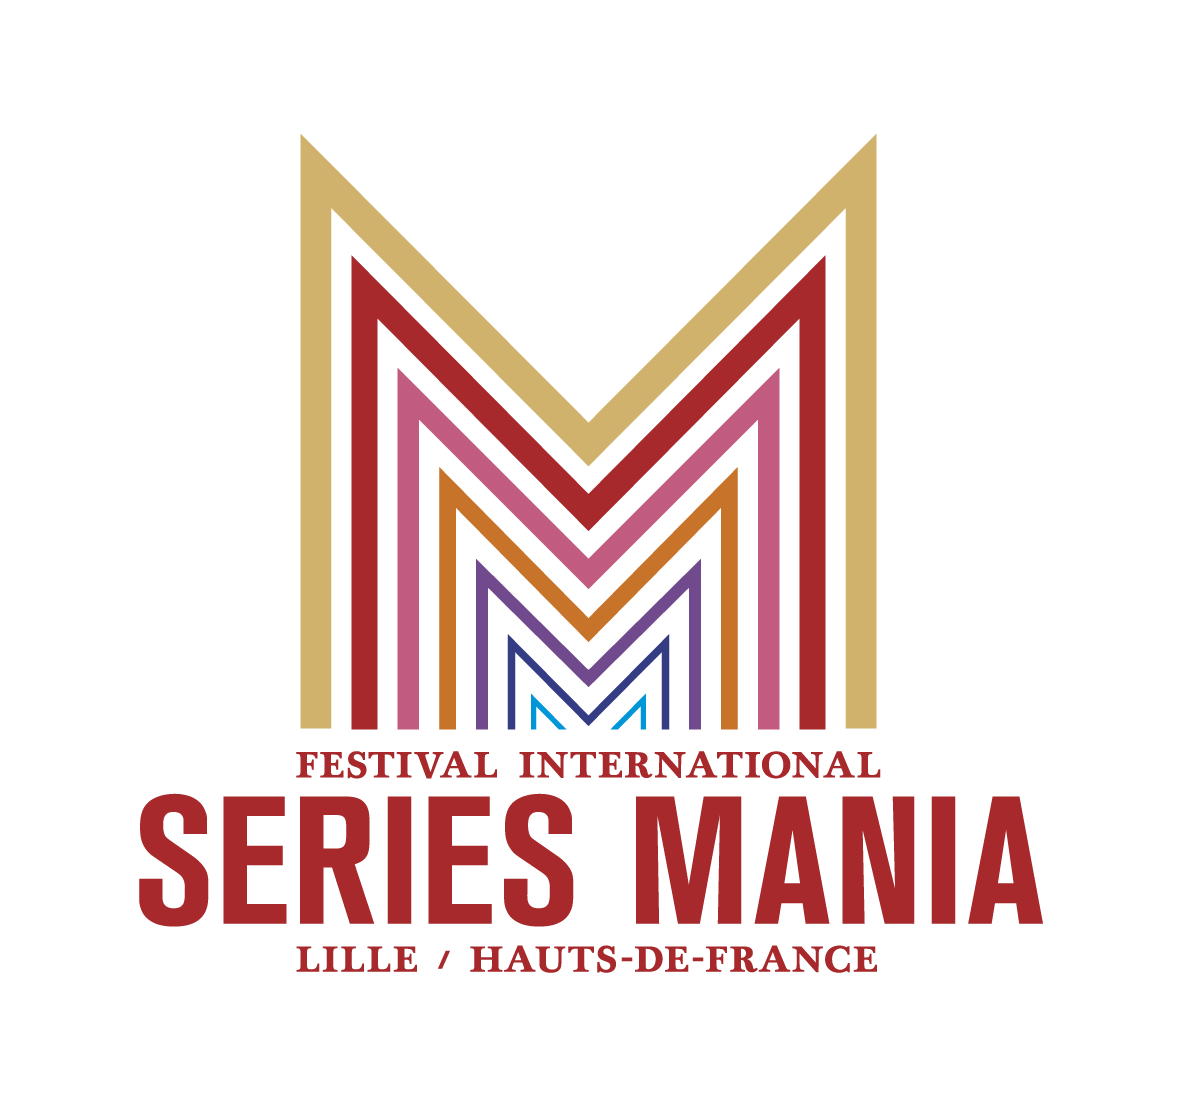 series-mania-forum-projets-talents-lille-grand-palais